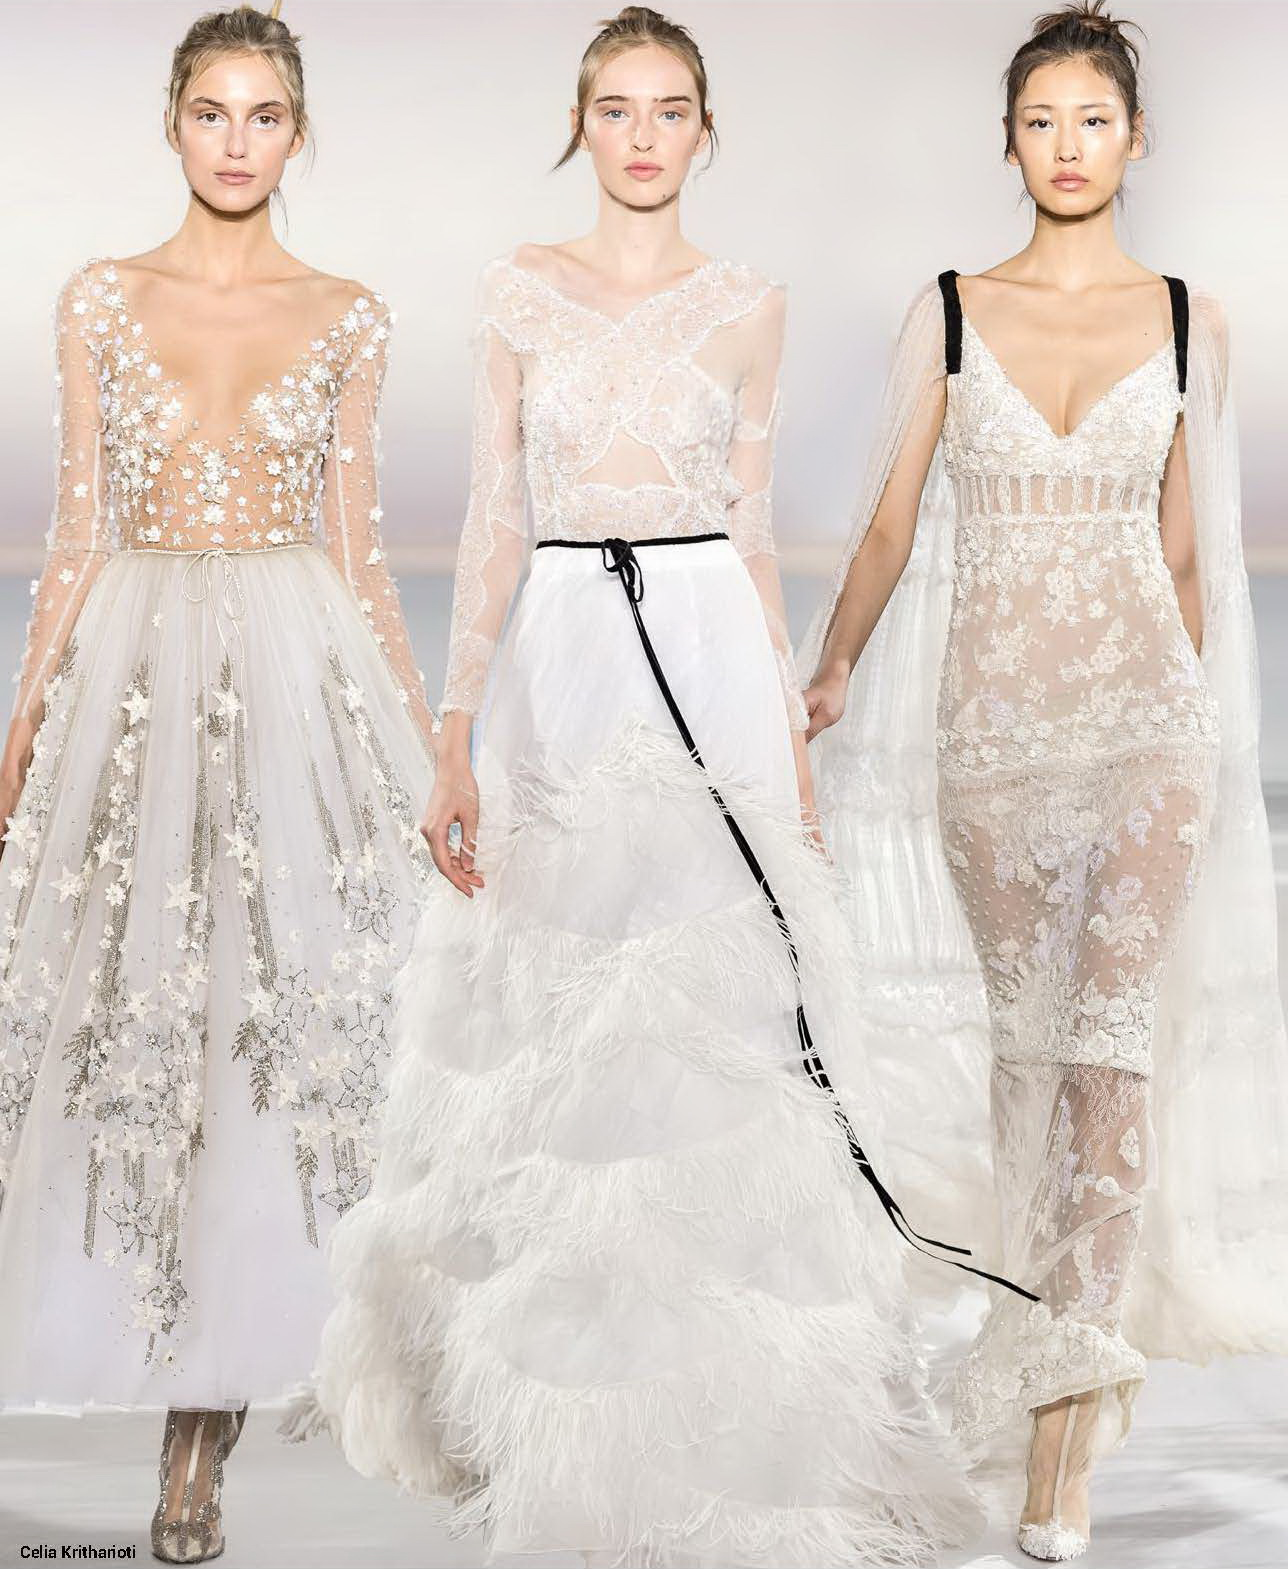 Pages from _Haute Couture&Sposa167_web_Page_4